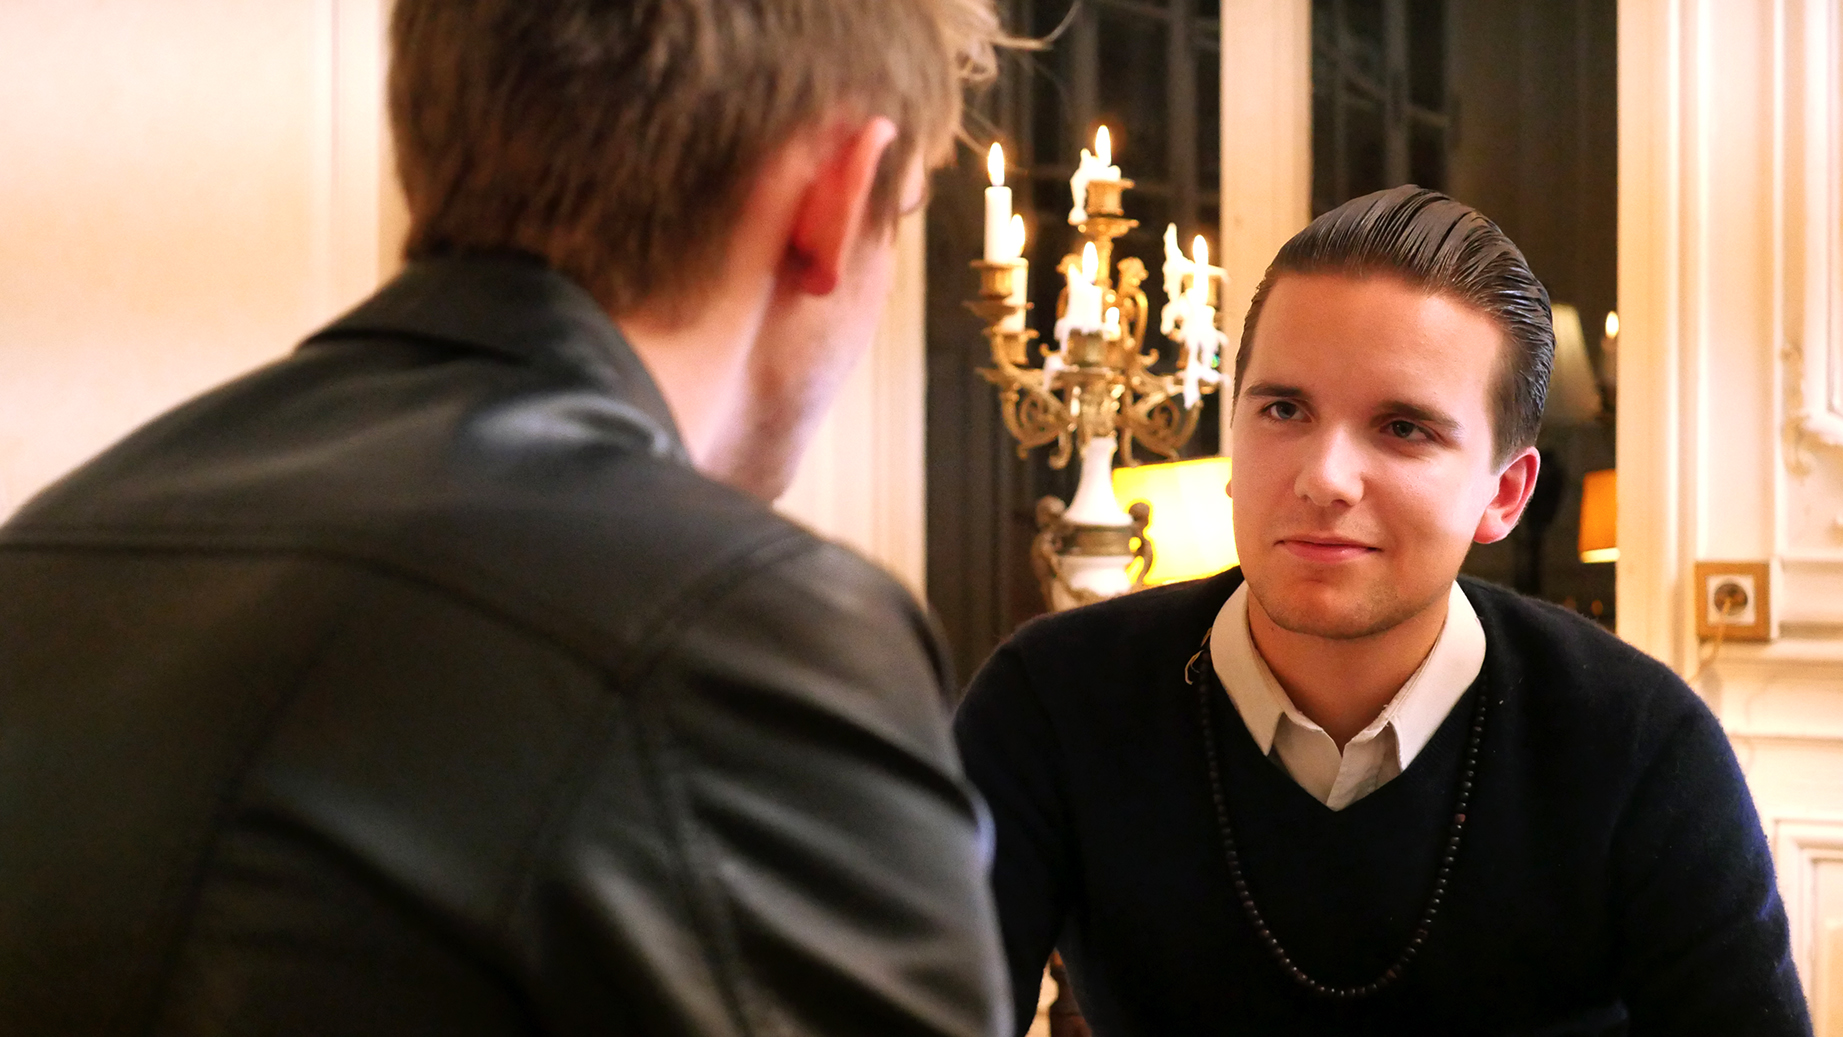 blog-mode-homme-strasbourg-suite-n7-theo-lawrence-and-the-hearts-interview-1